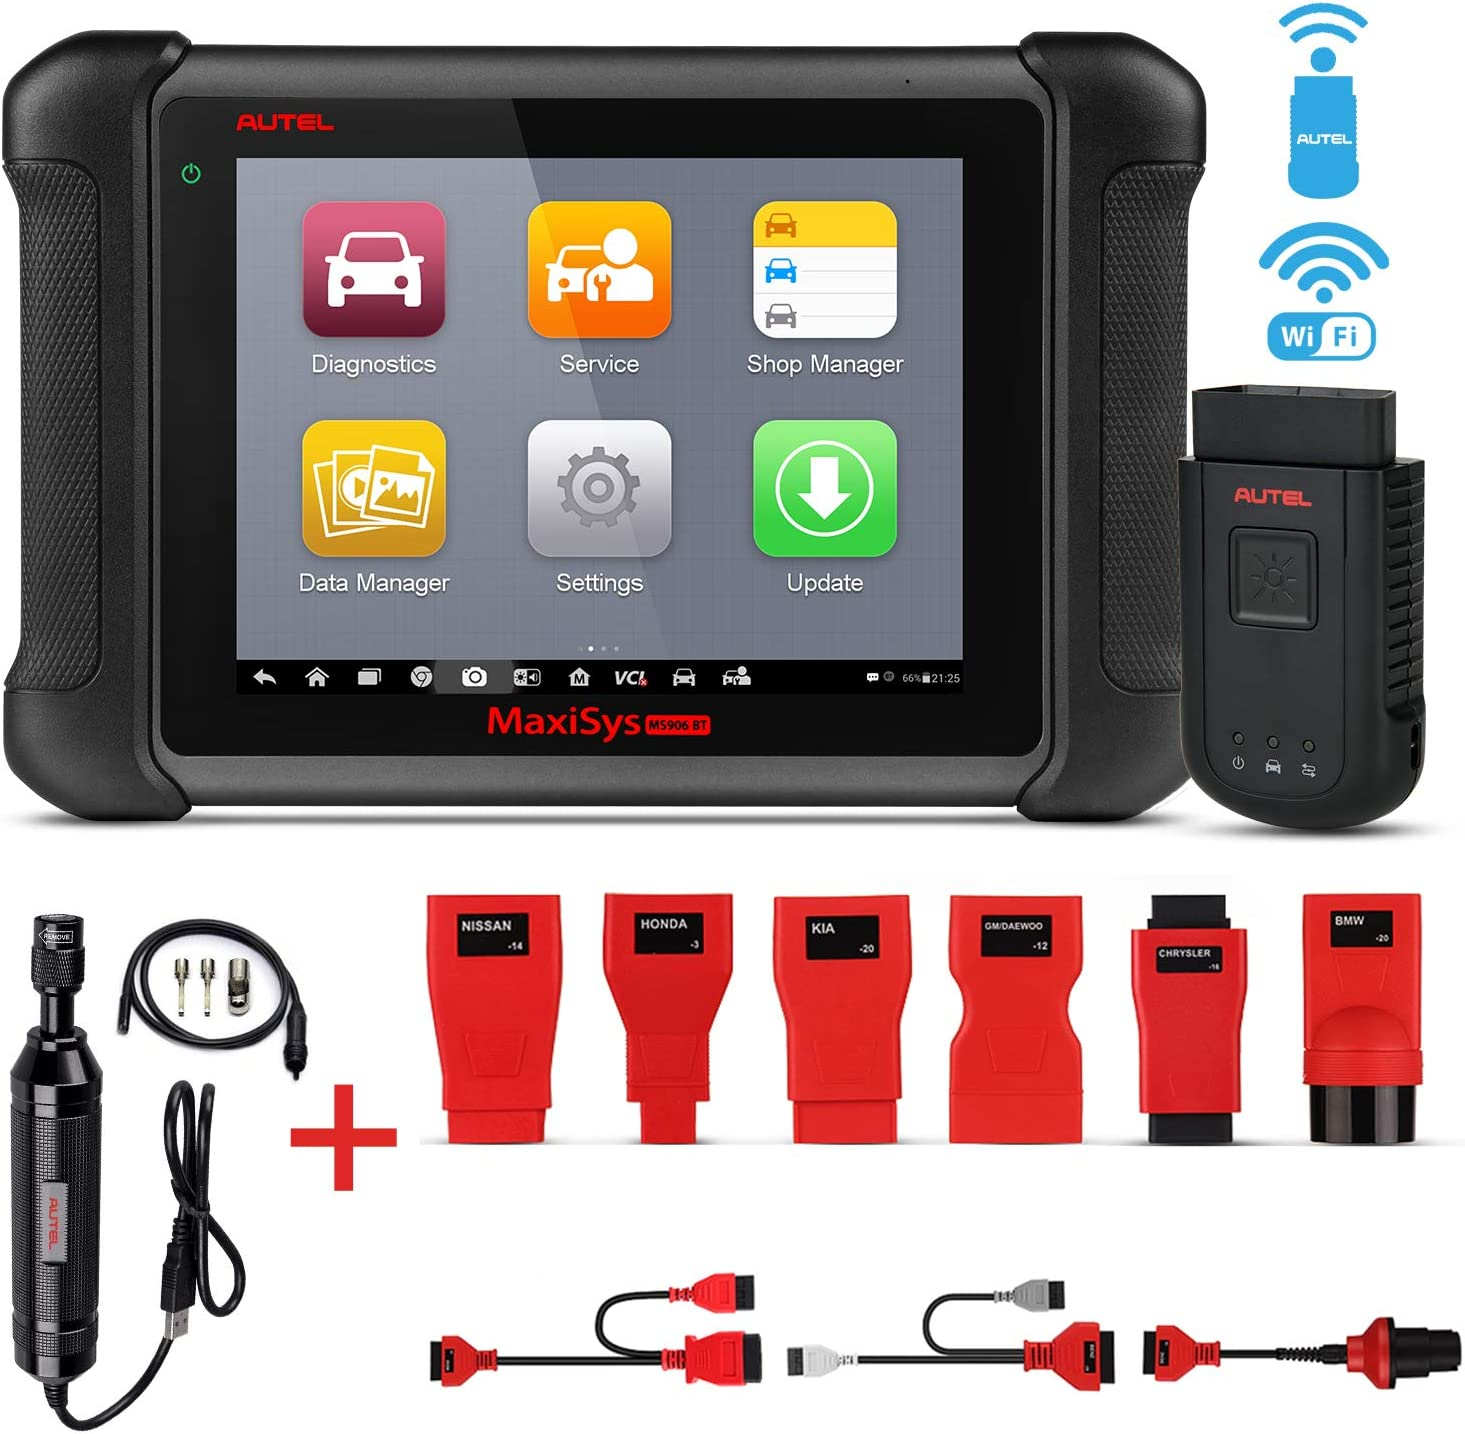 Autel MaxiSys MS906BT Automotive Scan Tool Car Diagnostic Scanner with ECU Coding, Active Test, IMMO Keys, OE-Level Diagnosis Oil Reset, EPB, SAS, DPF, ABS Bleeding MV108 Add-On